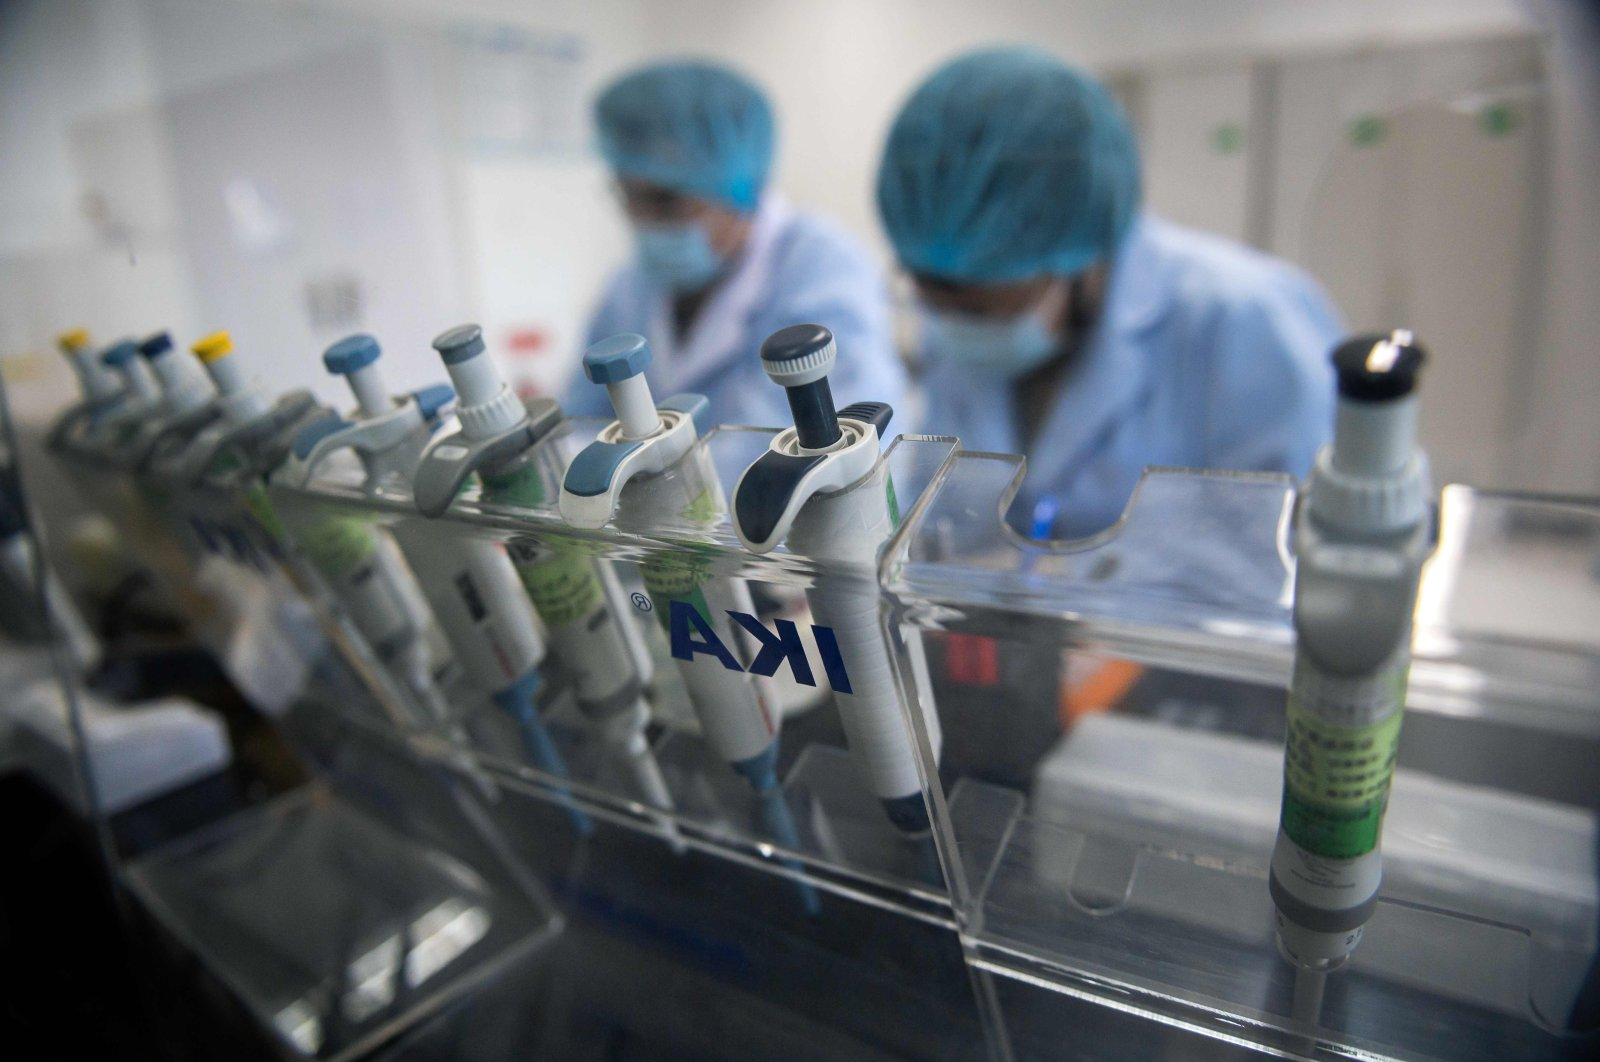 Workers are seen inside the Beijing Applied Biological Technologies (XABT) research and development laboratory, Beijing, May 14, 2020. (AFP Photo)